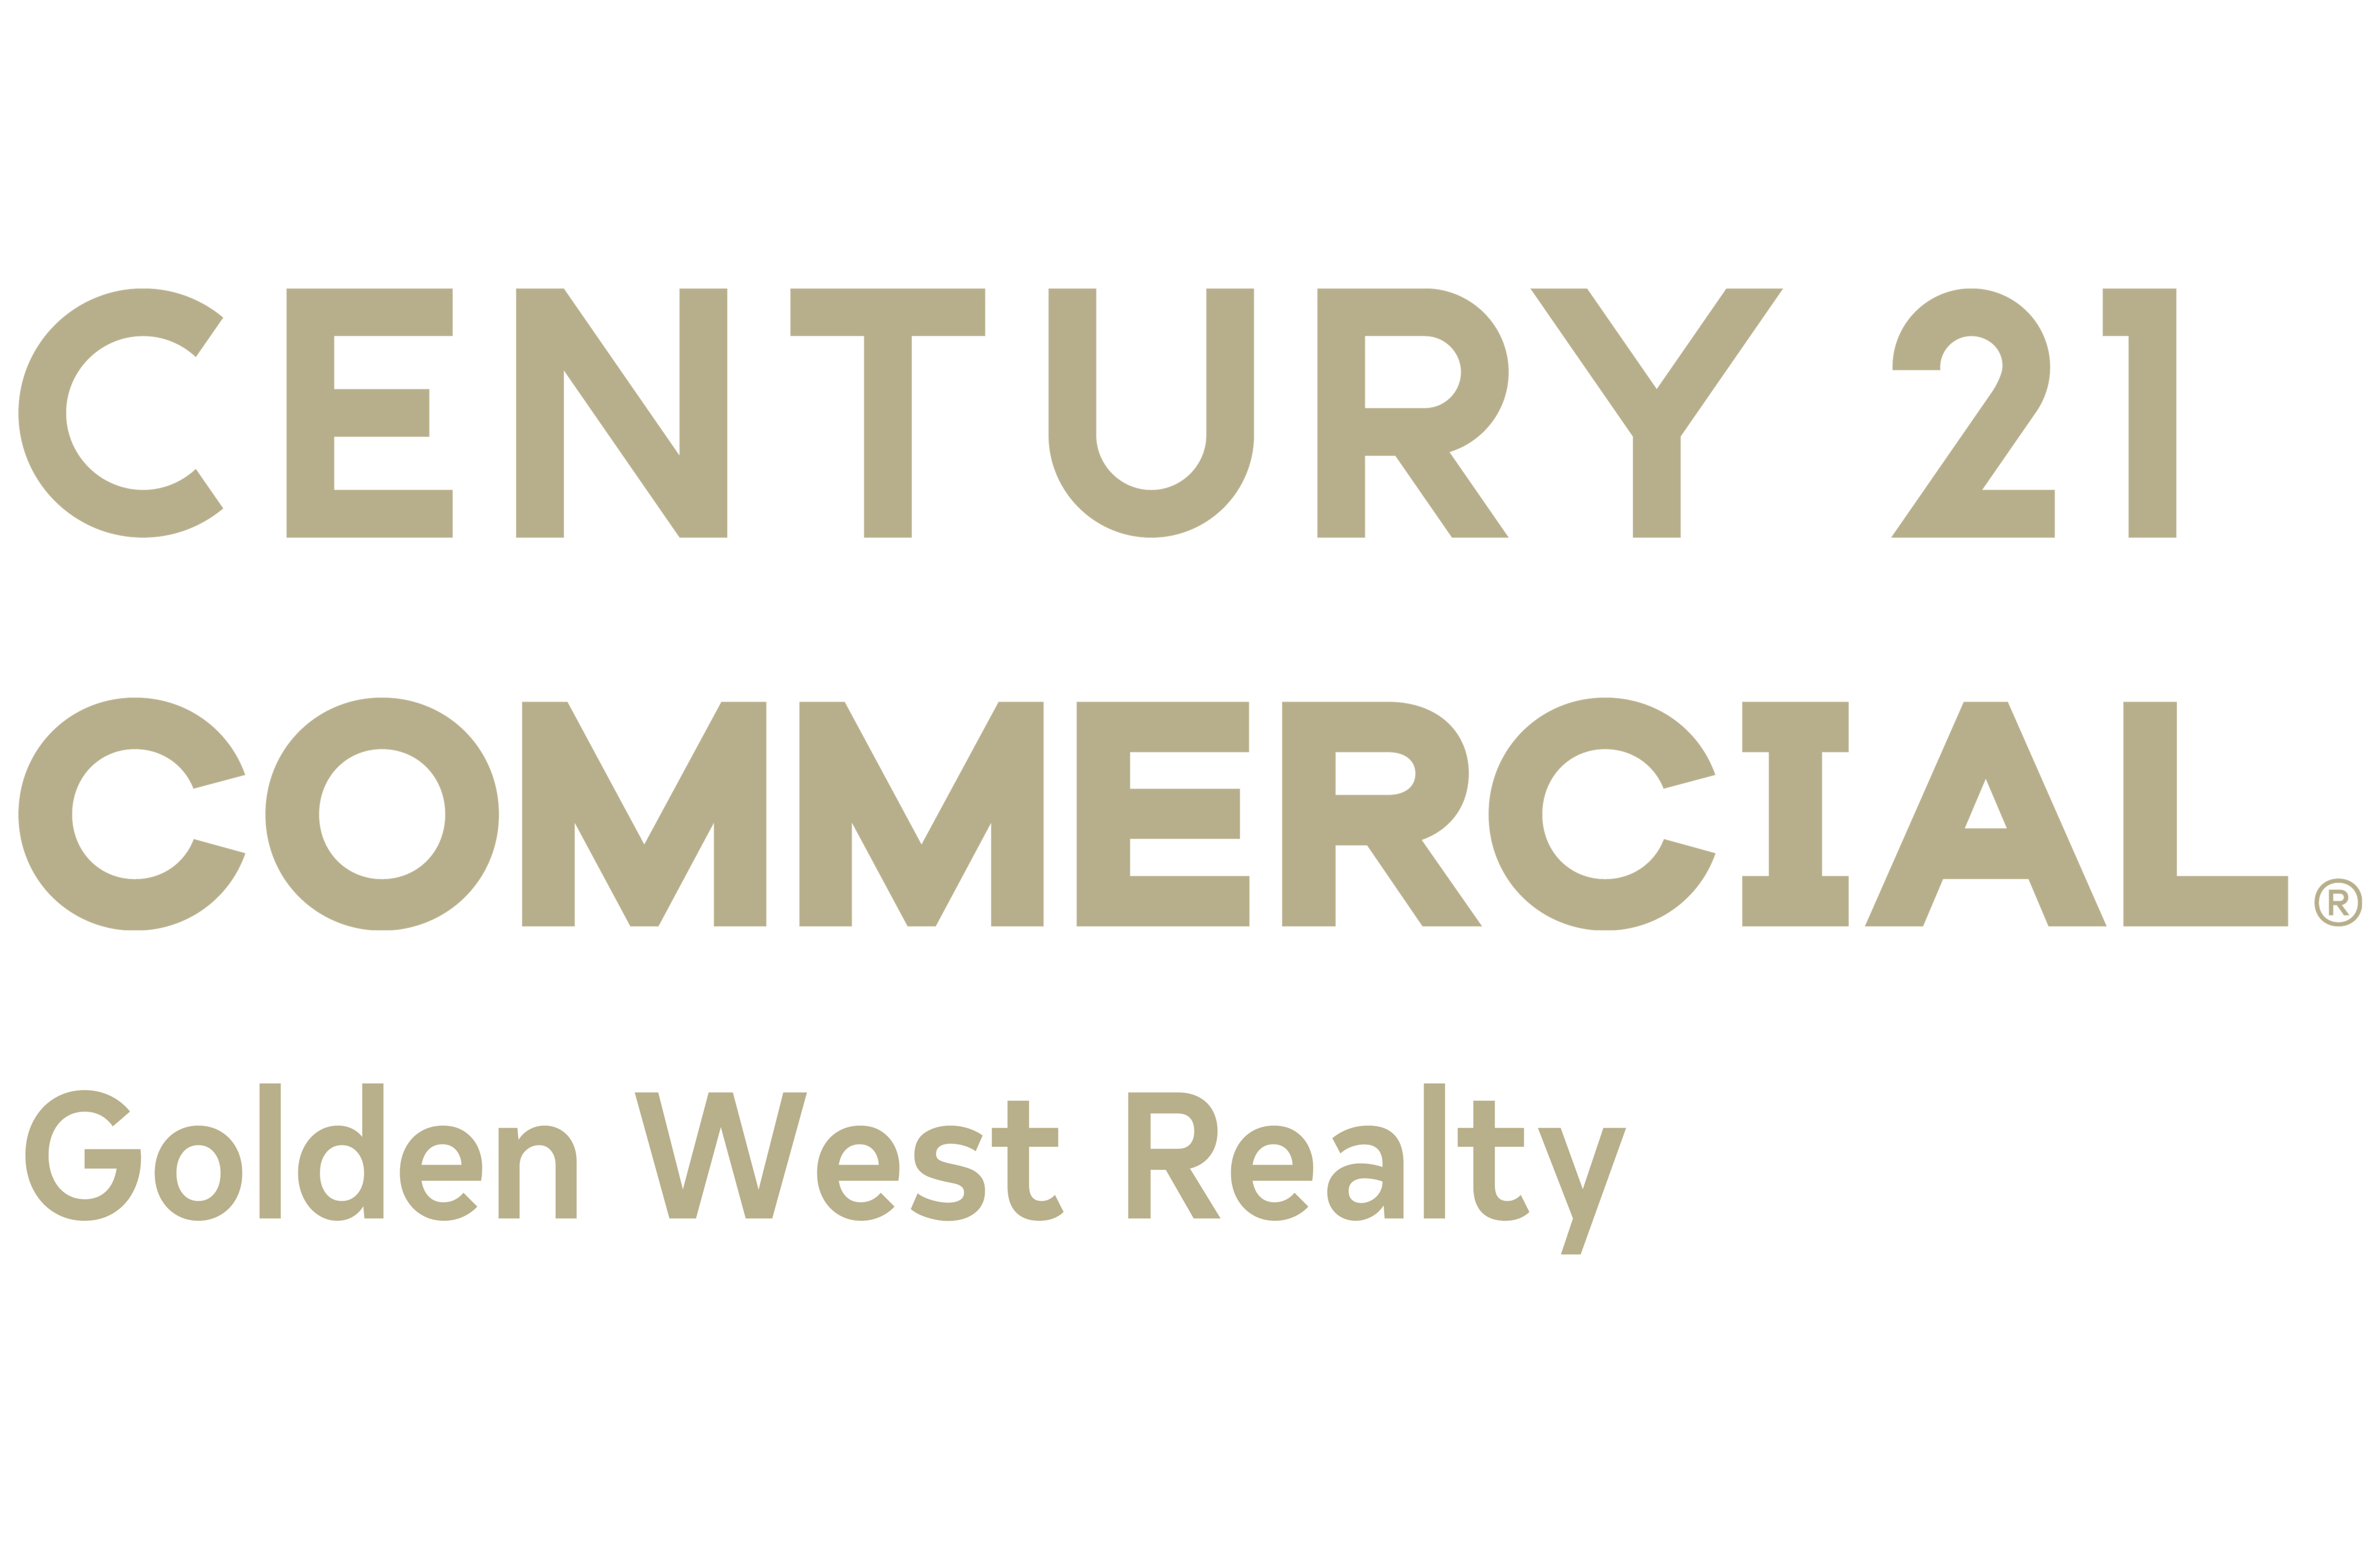 Augustin Baca of CENTURY 21 Golden West Realty logo